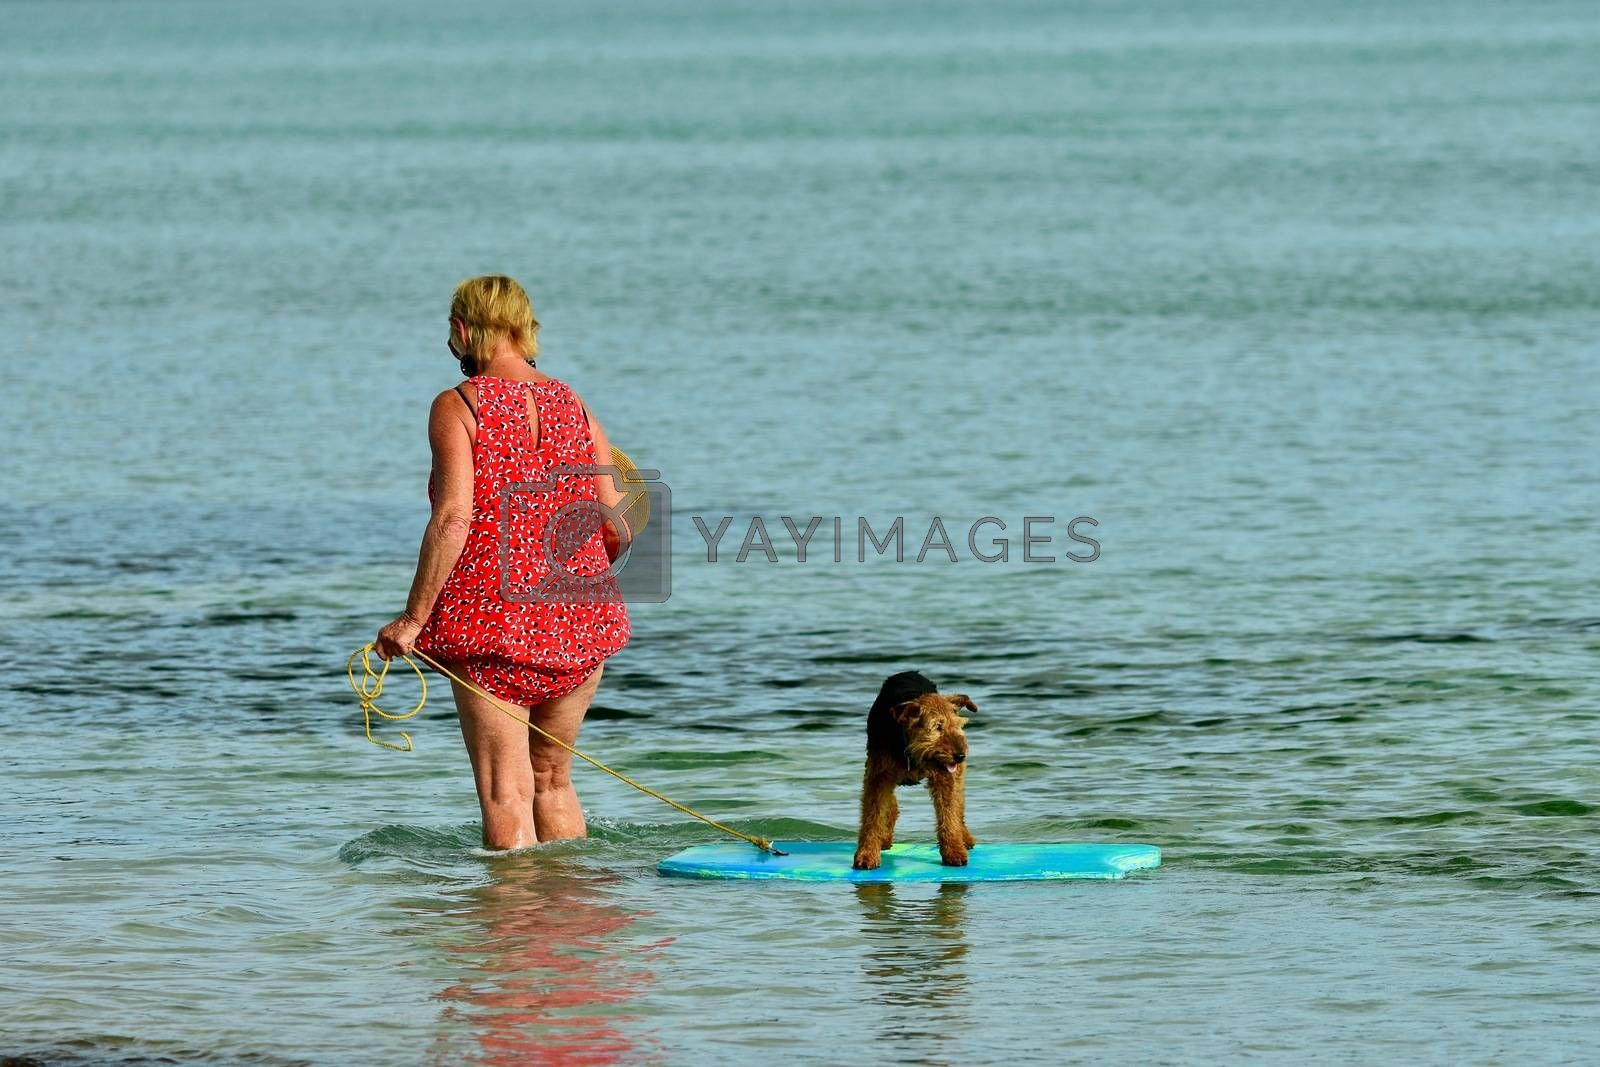 a woman giving her pet dog a ride on a surf board, at a sea beach